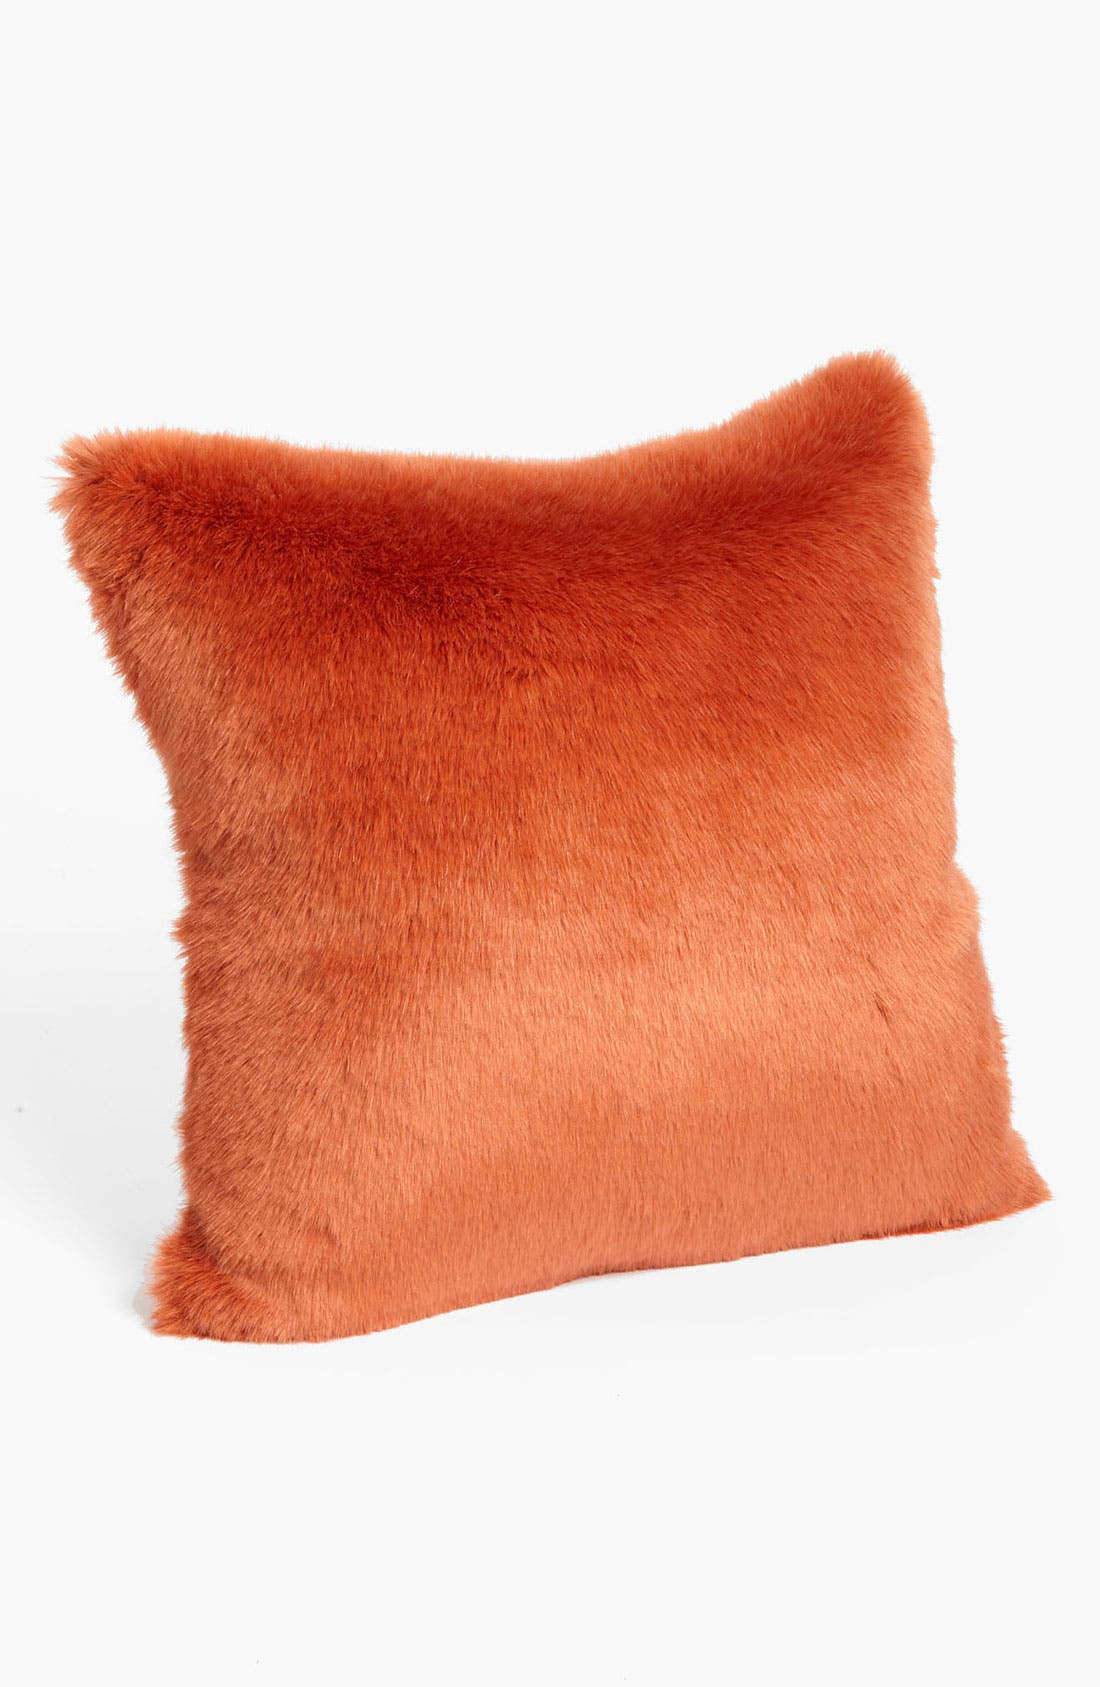 Alternate Image 1 Selected - Nordstrom at Home 'Jolly' Pillow Cover